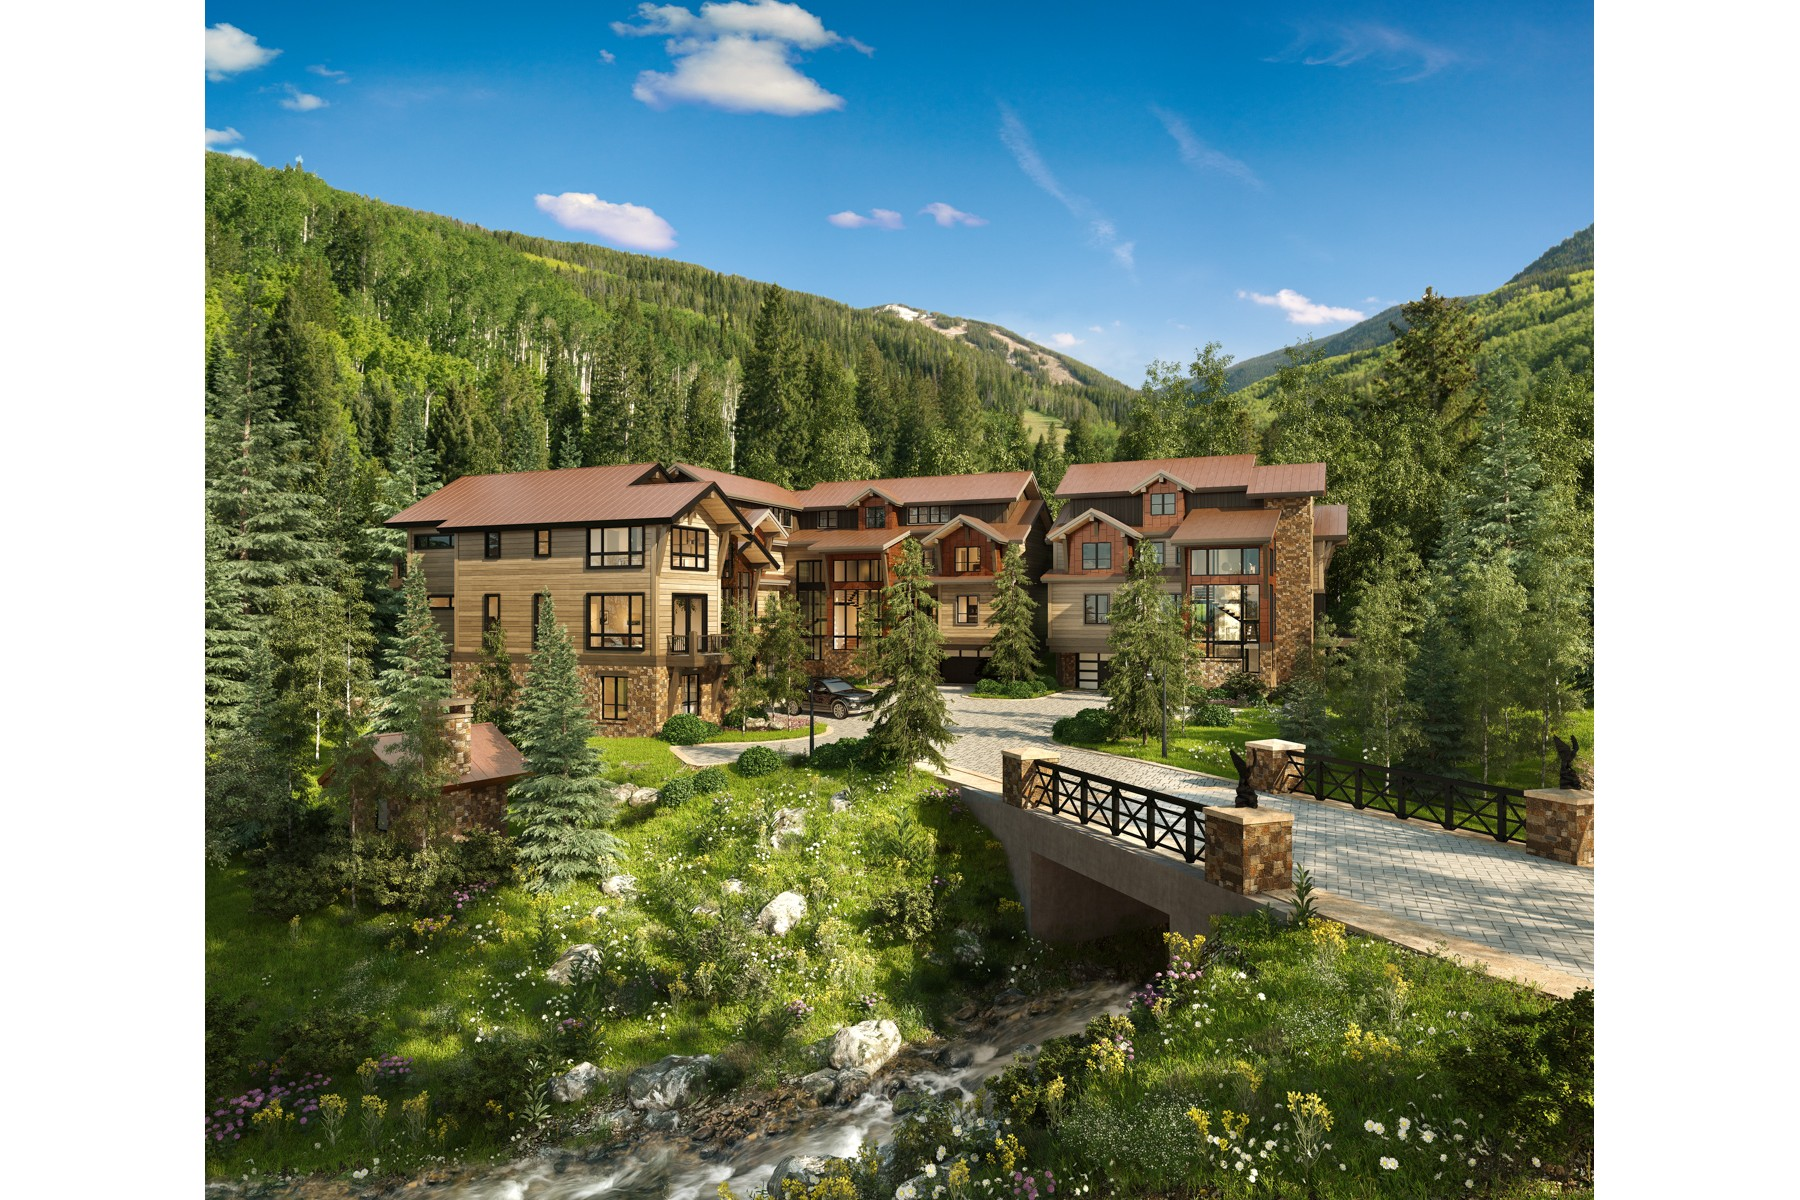 Single Family Home for Active at Peregrine Villas 185 Elk Track Road Beaver Creek, Colorado 81620 United States